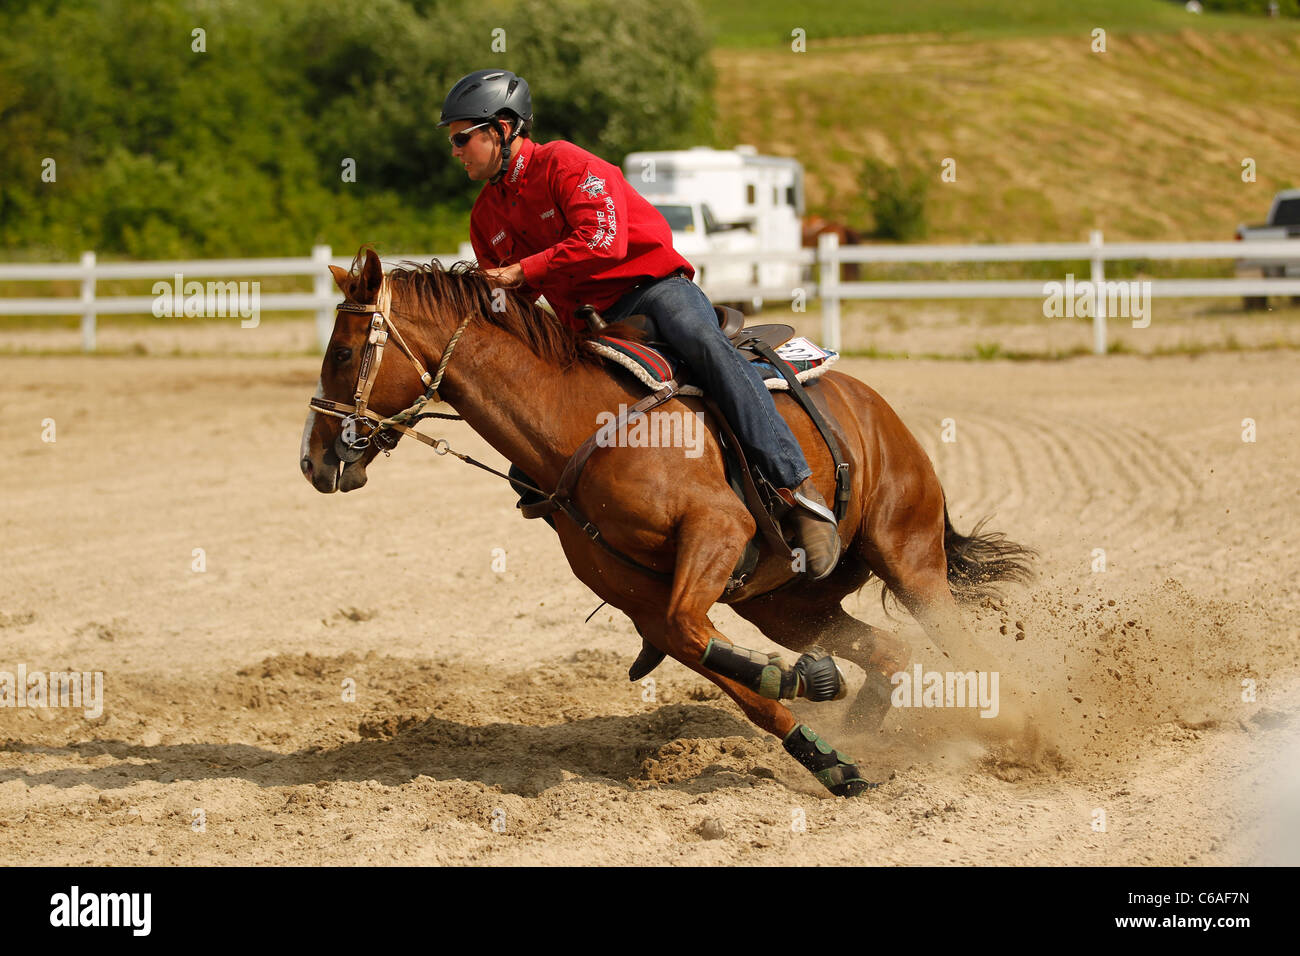 Chestnut sorrel horse and rider taking part in Western gaming race, Ontario, Canada - Stock Image